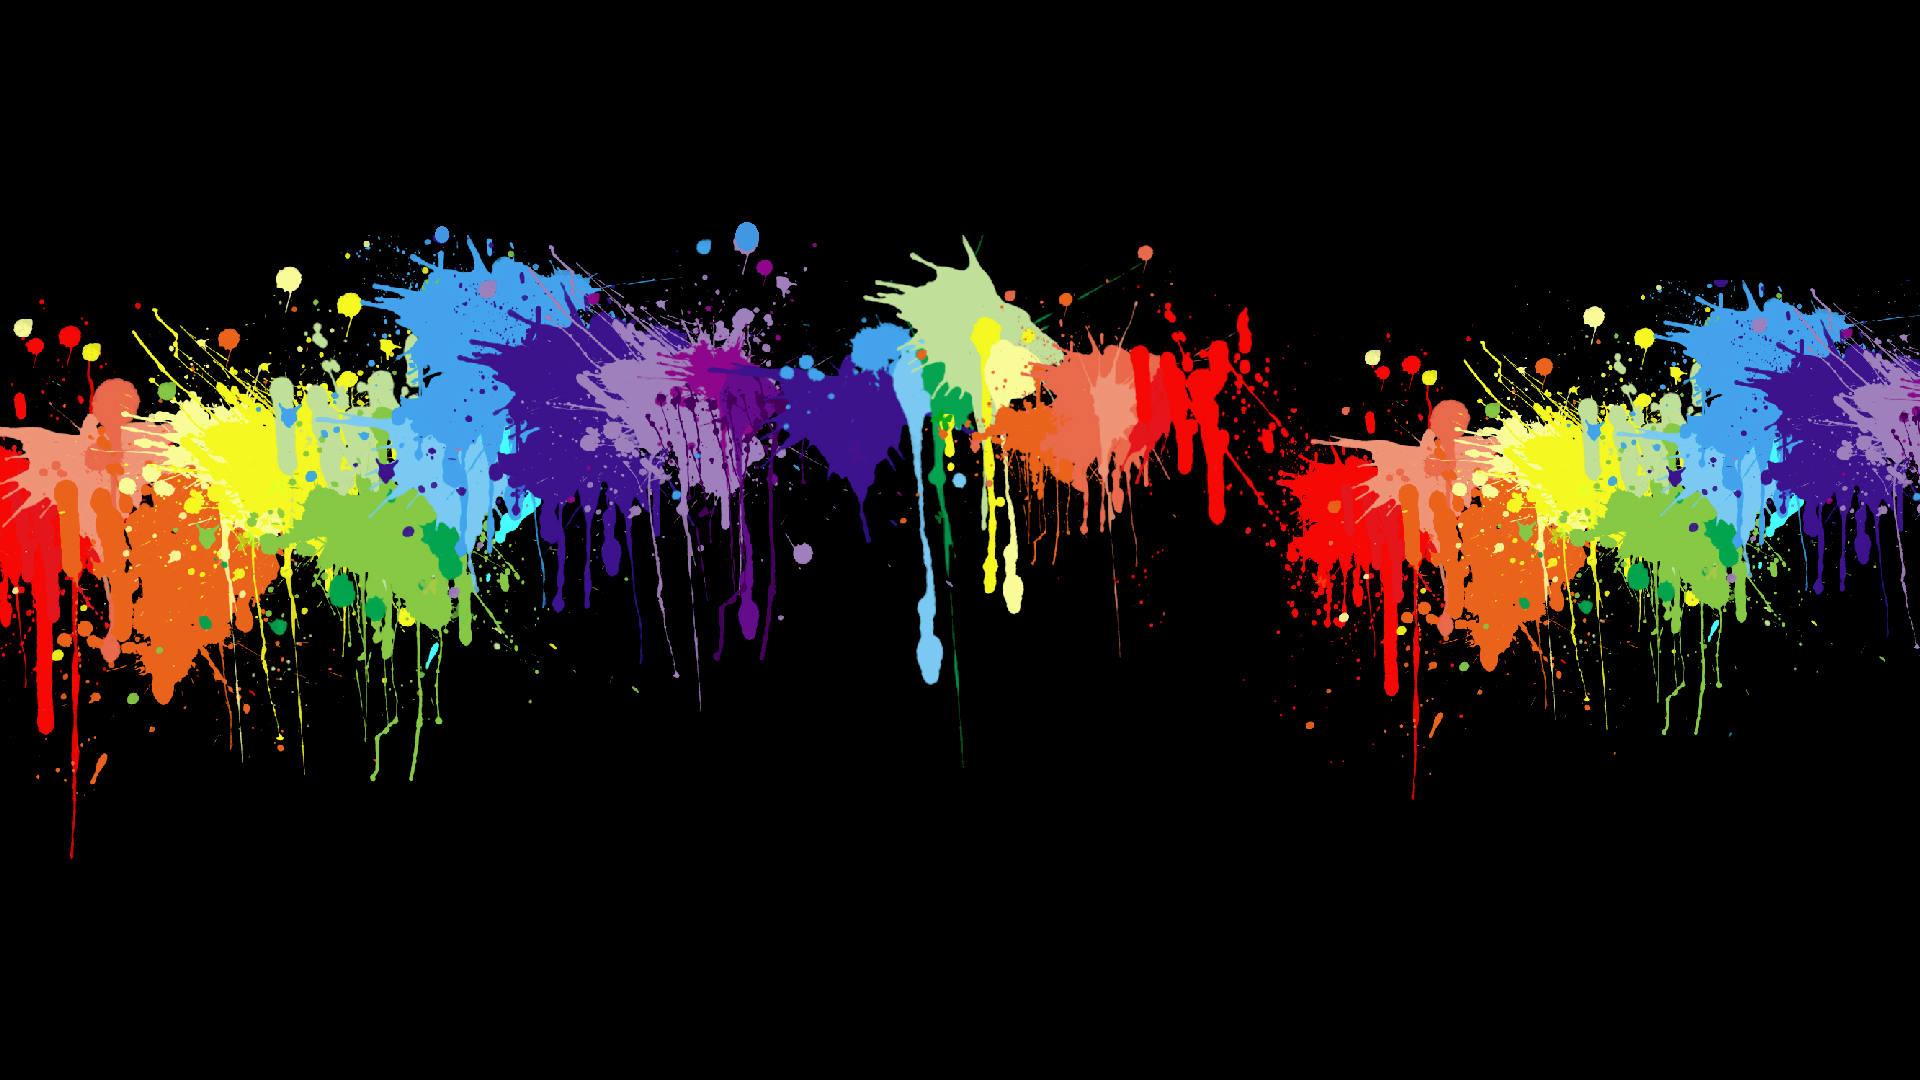 Free download Paint Splatter Wallpapers [1920x1080] for your